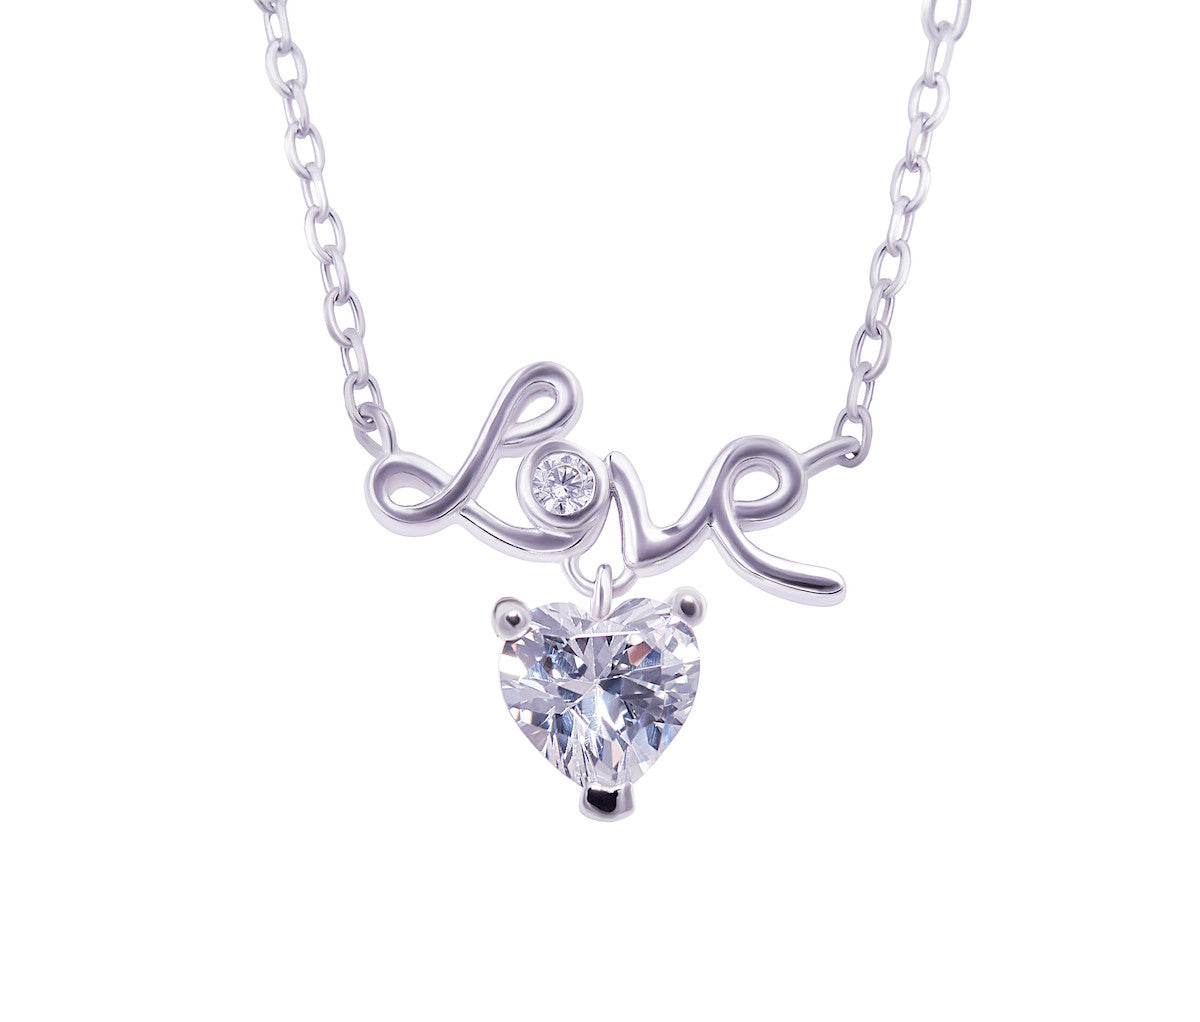 Silver LOVE Heart Necklace